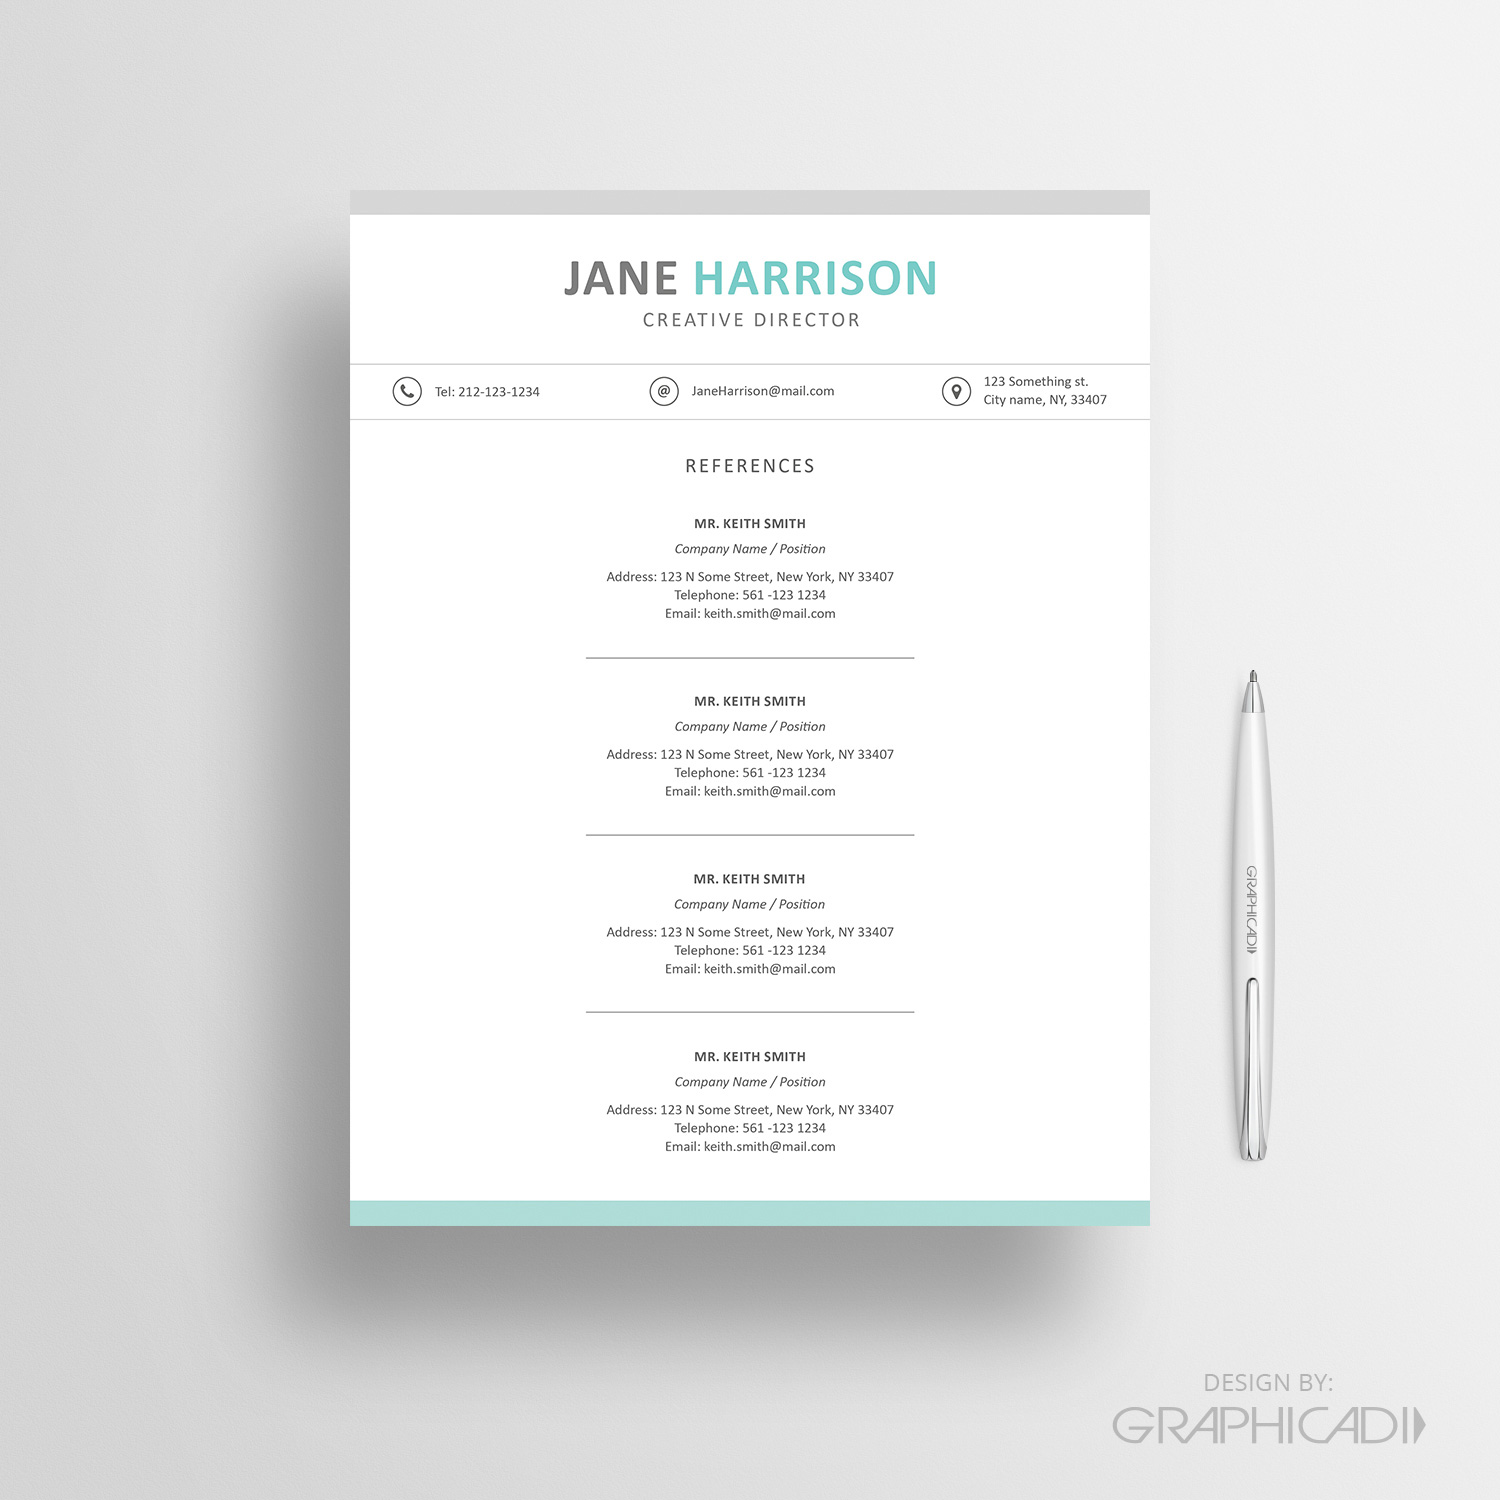 Reference List For Resume resume reference listreference list for resume reference template for resume template Resume Reference Page Resume Reference Sheet